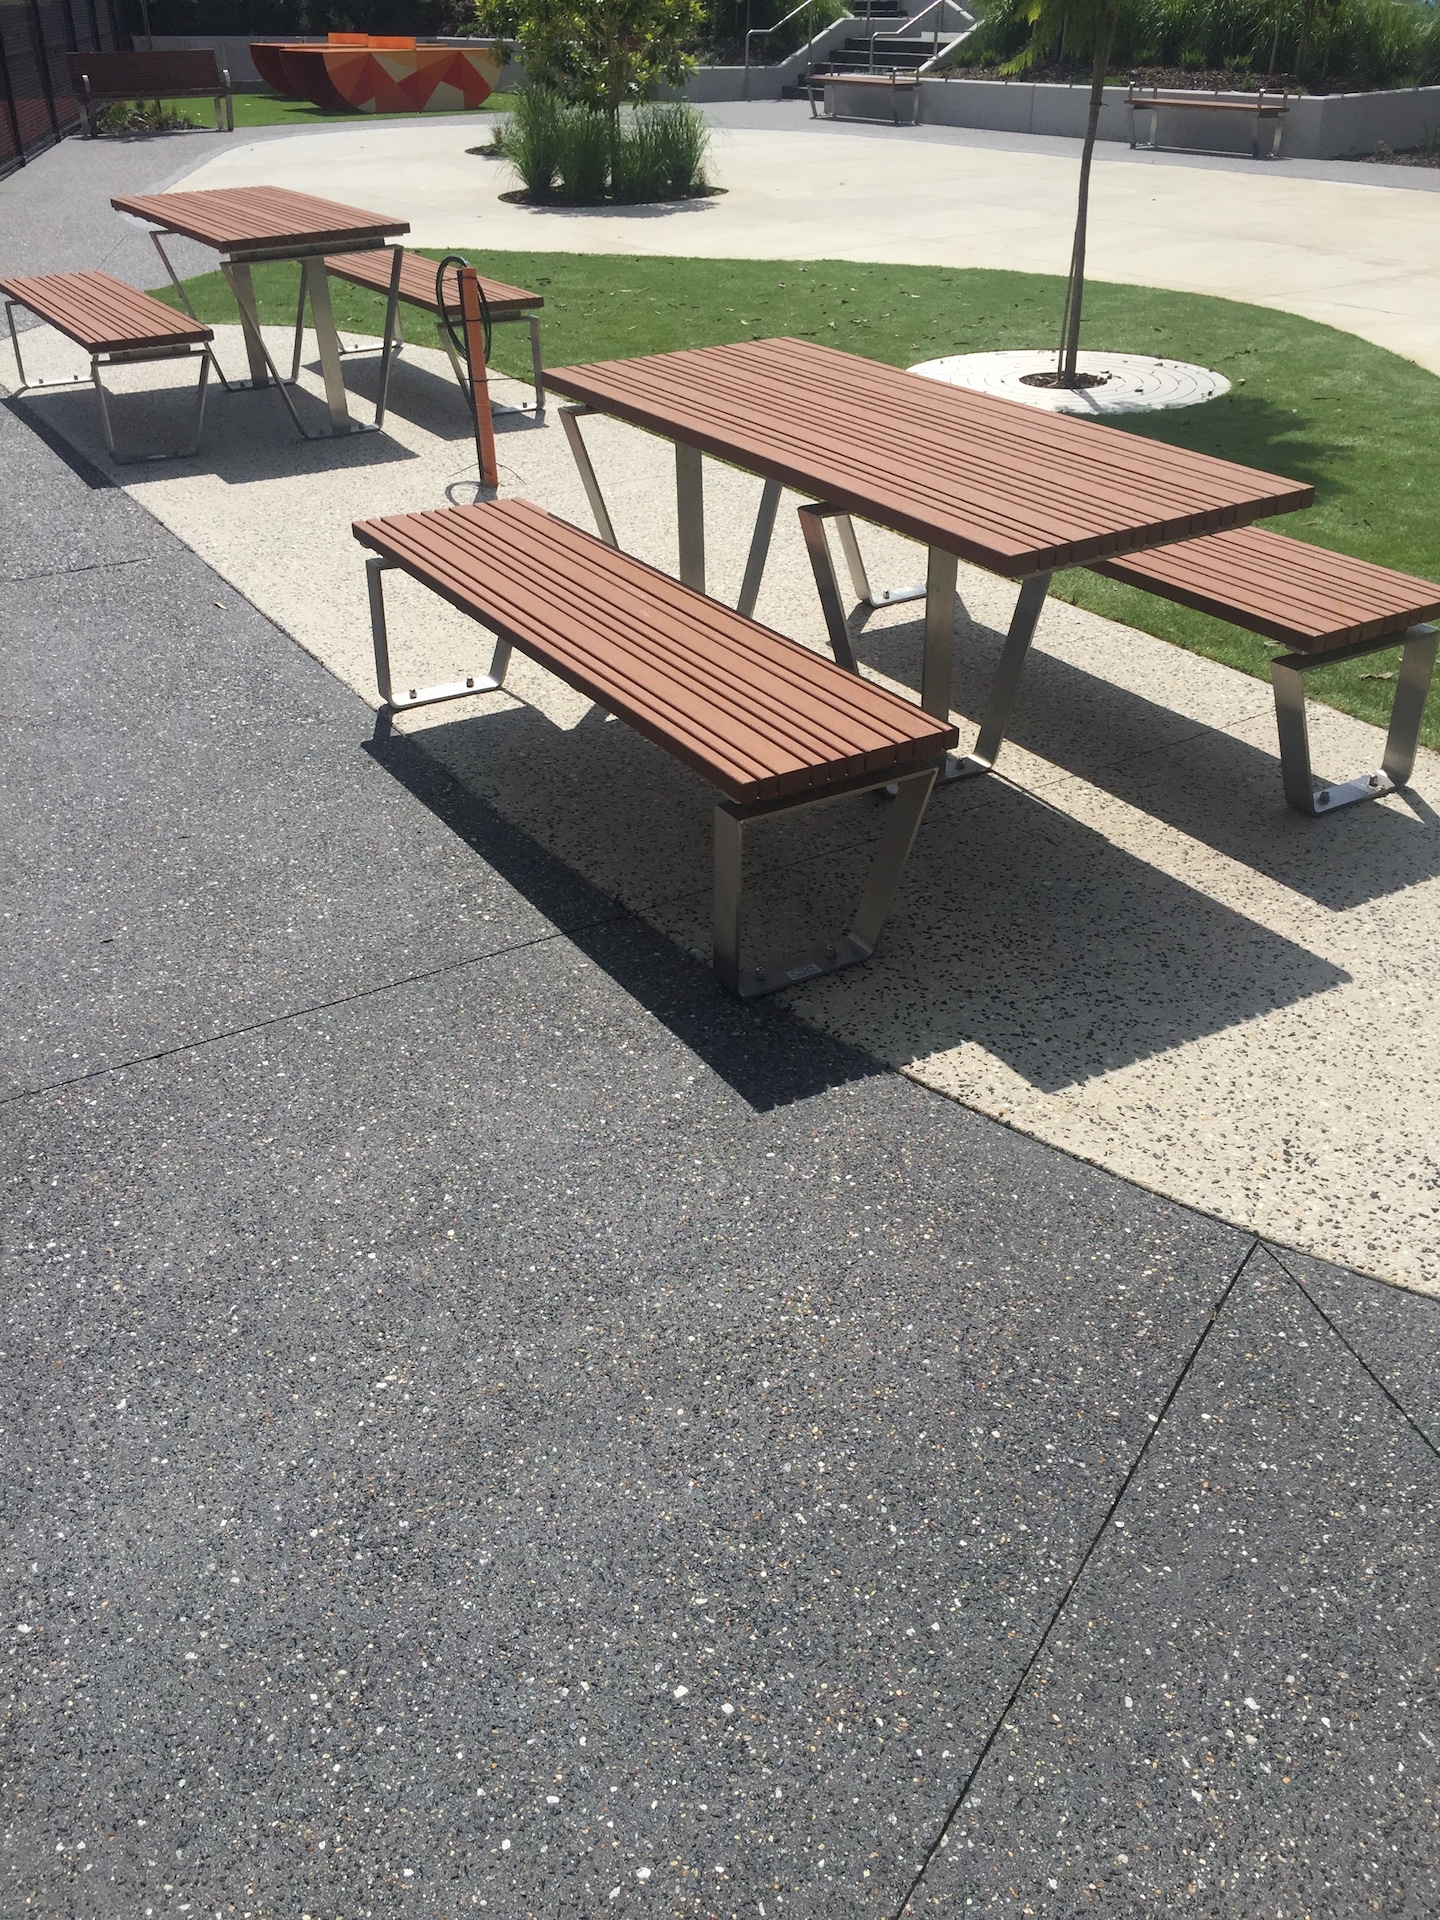 Outdoor Furniture on Exposed aggregate concrete. Commercial Landscaping at Balwyn Community Centre